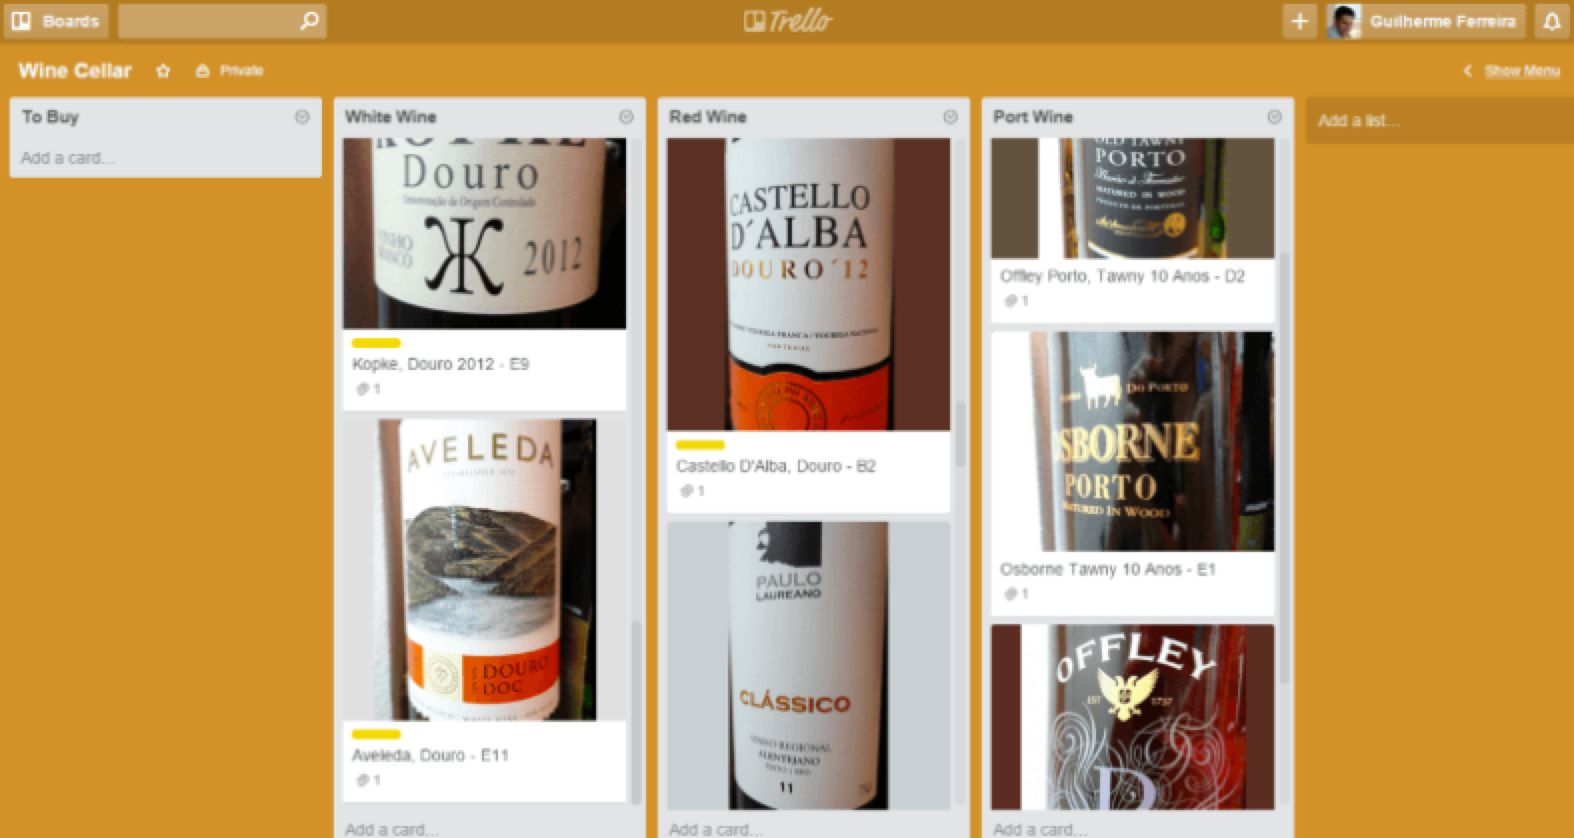 Trello hobbies template